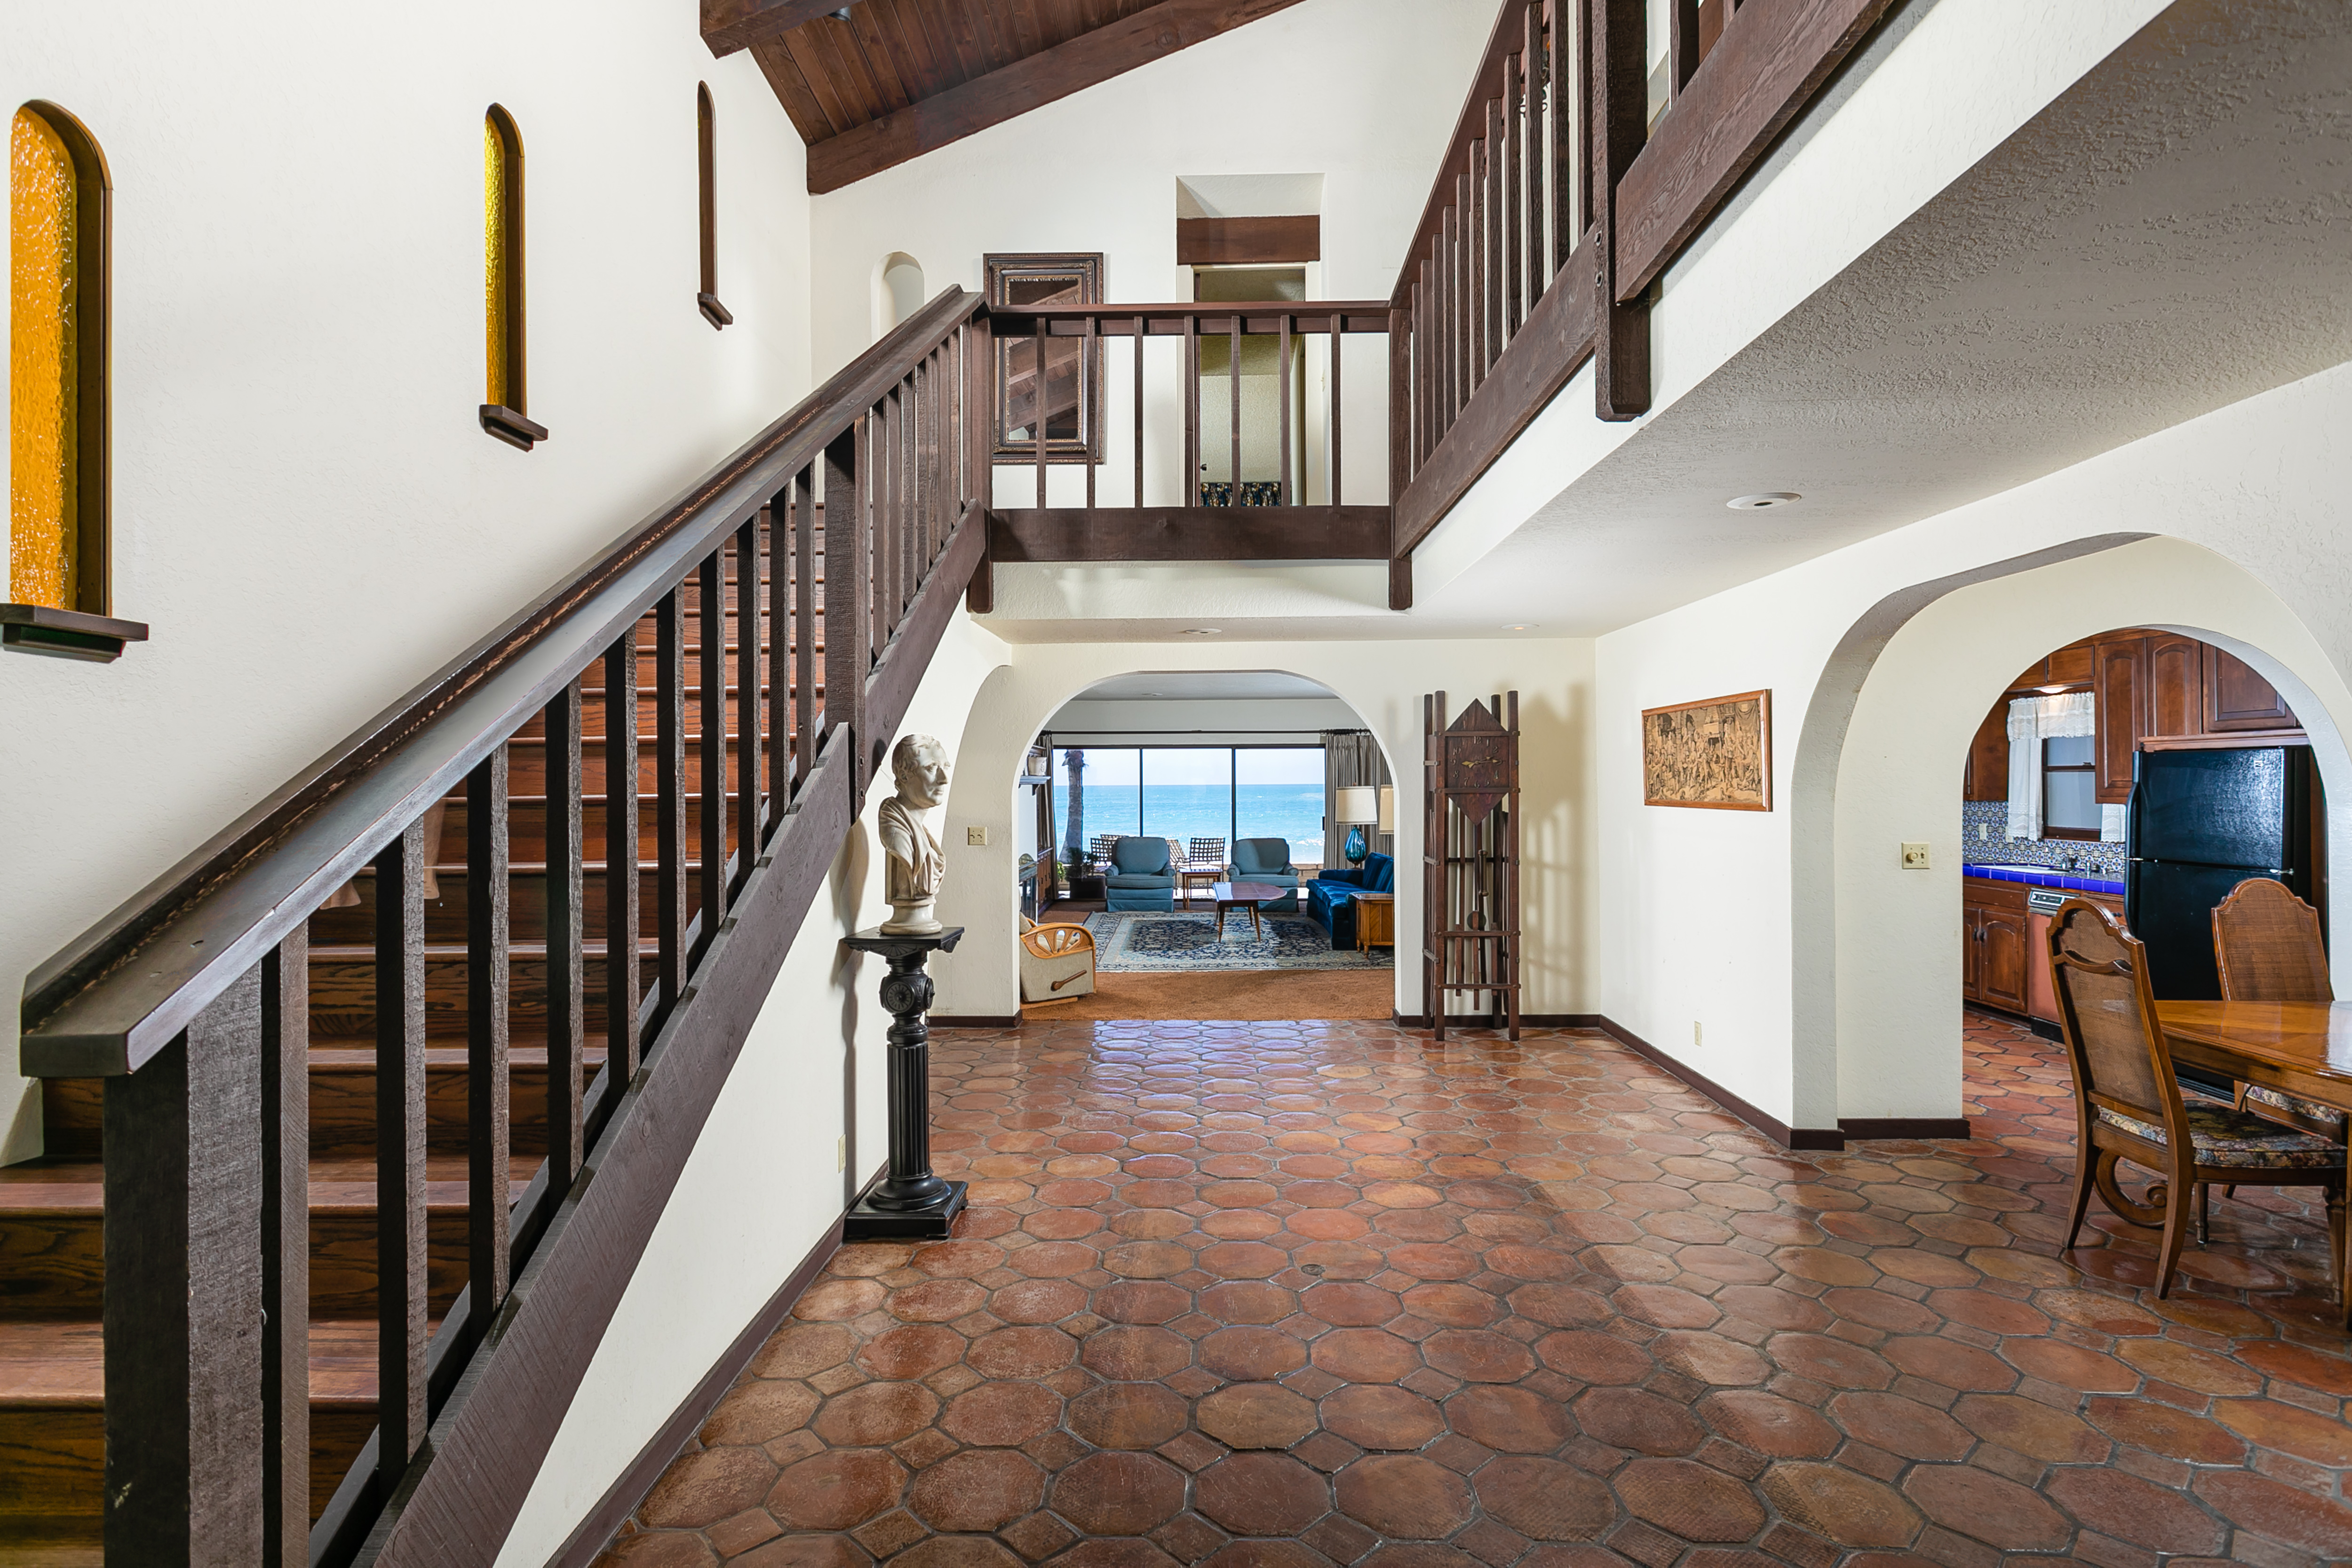 Single Family Home for sale in 35161 Beach Rd, Dana Point, California ,92624